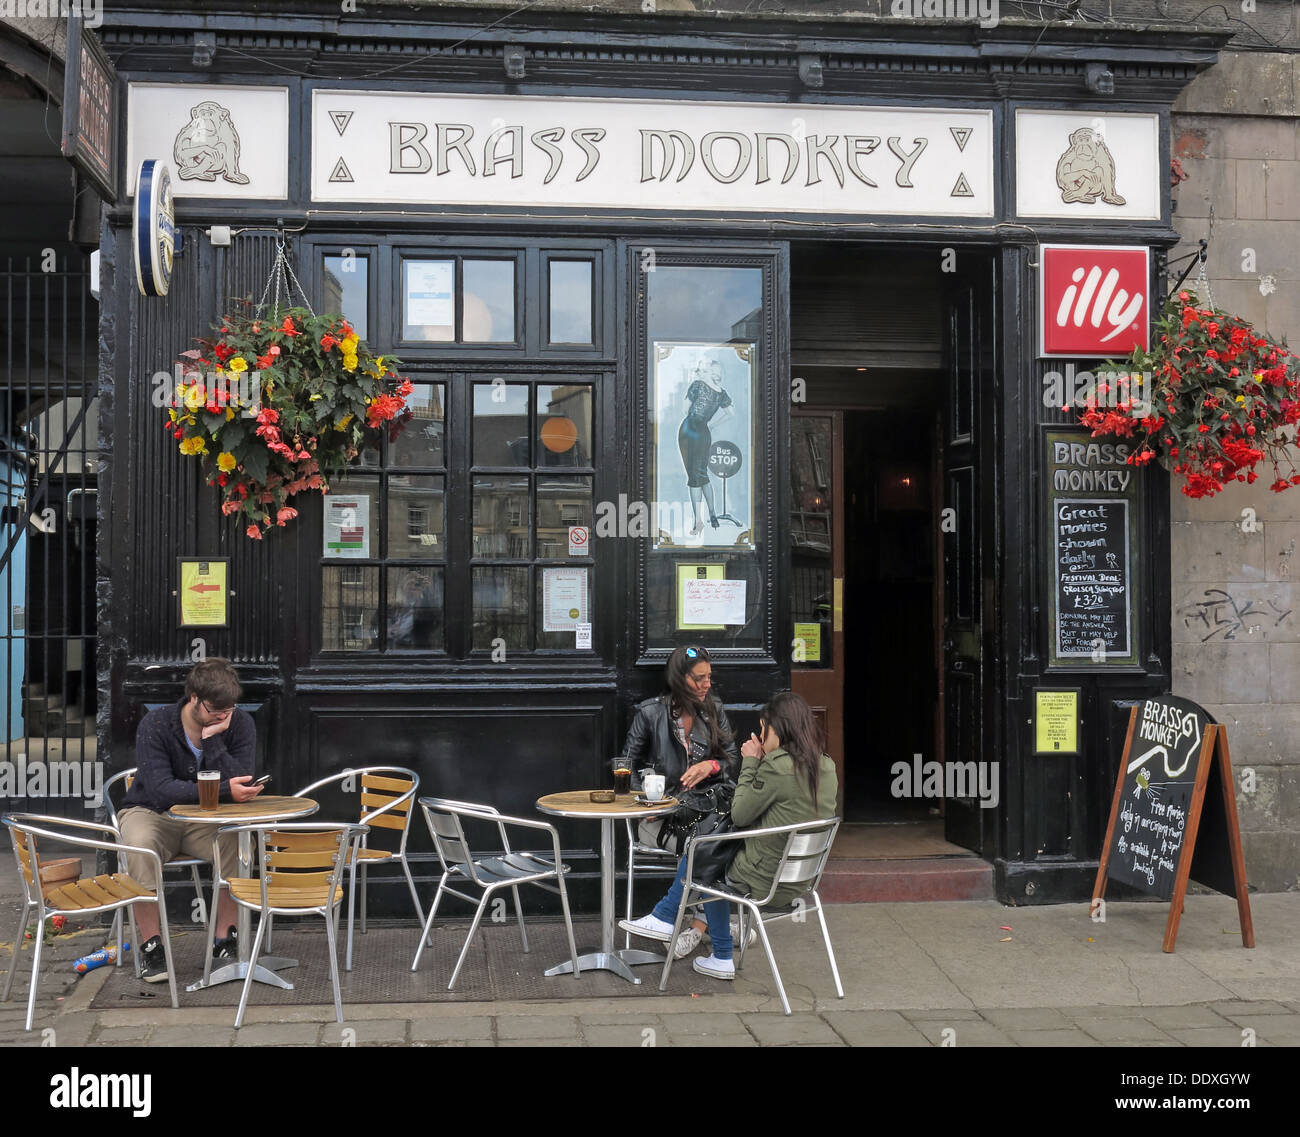 Capital,city,pubs,bars,bar,beer,ale,ales,beers,drink,drinks,seats,seat,outside,sit,sitting,14,Drummond,Street,Brass Monkey,Brass Monkey Pub,14 Drummond Street,GoTonySmith,@HotpixUK,Buy Pictures of,Buy Images Of,Images of,Stock Images